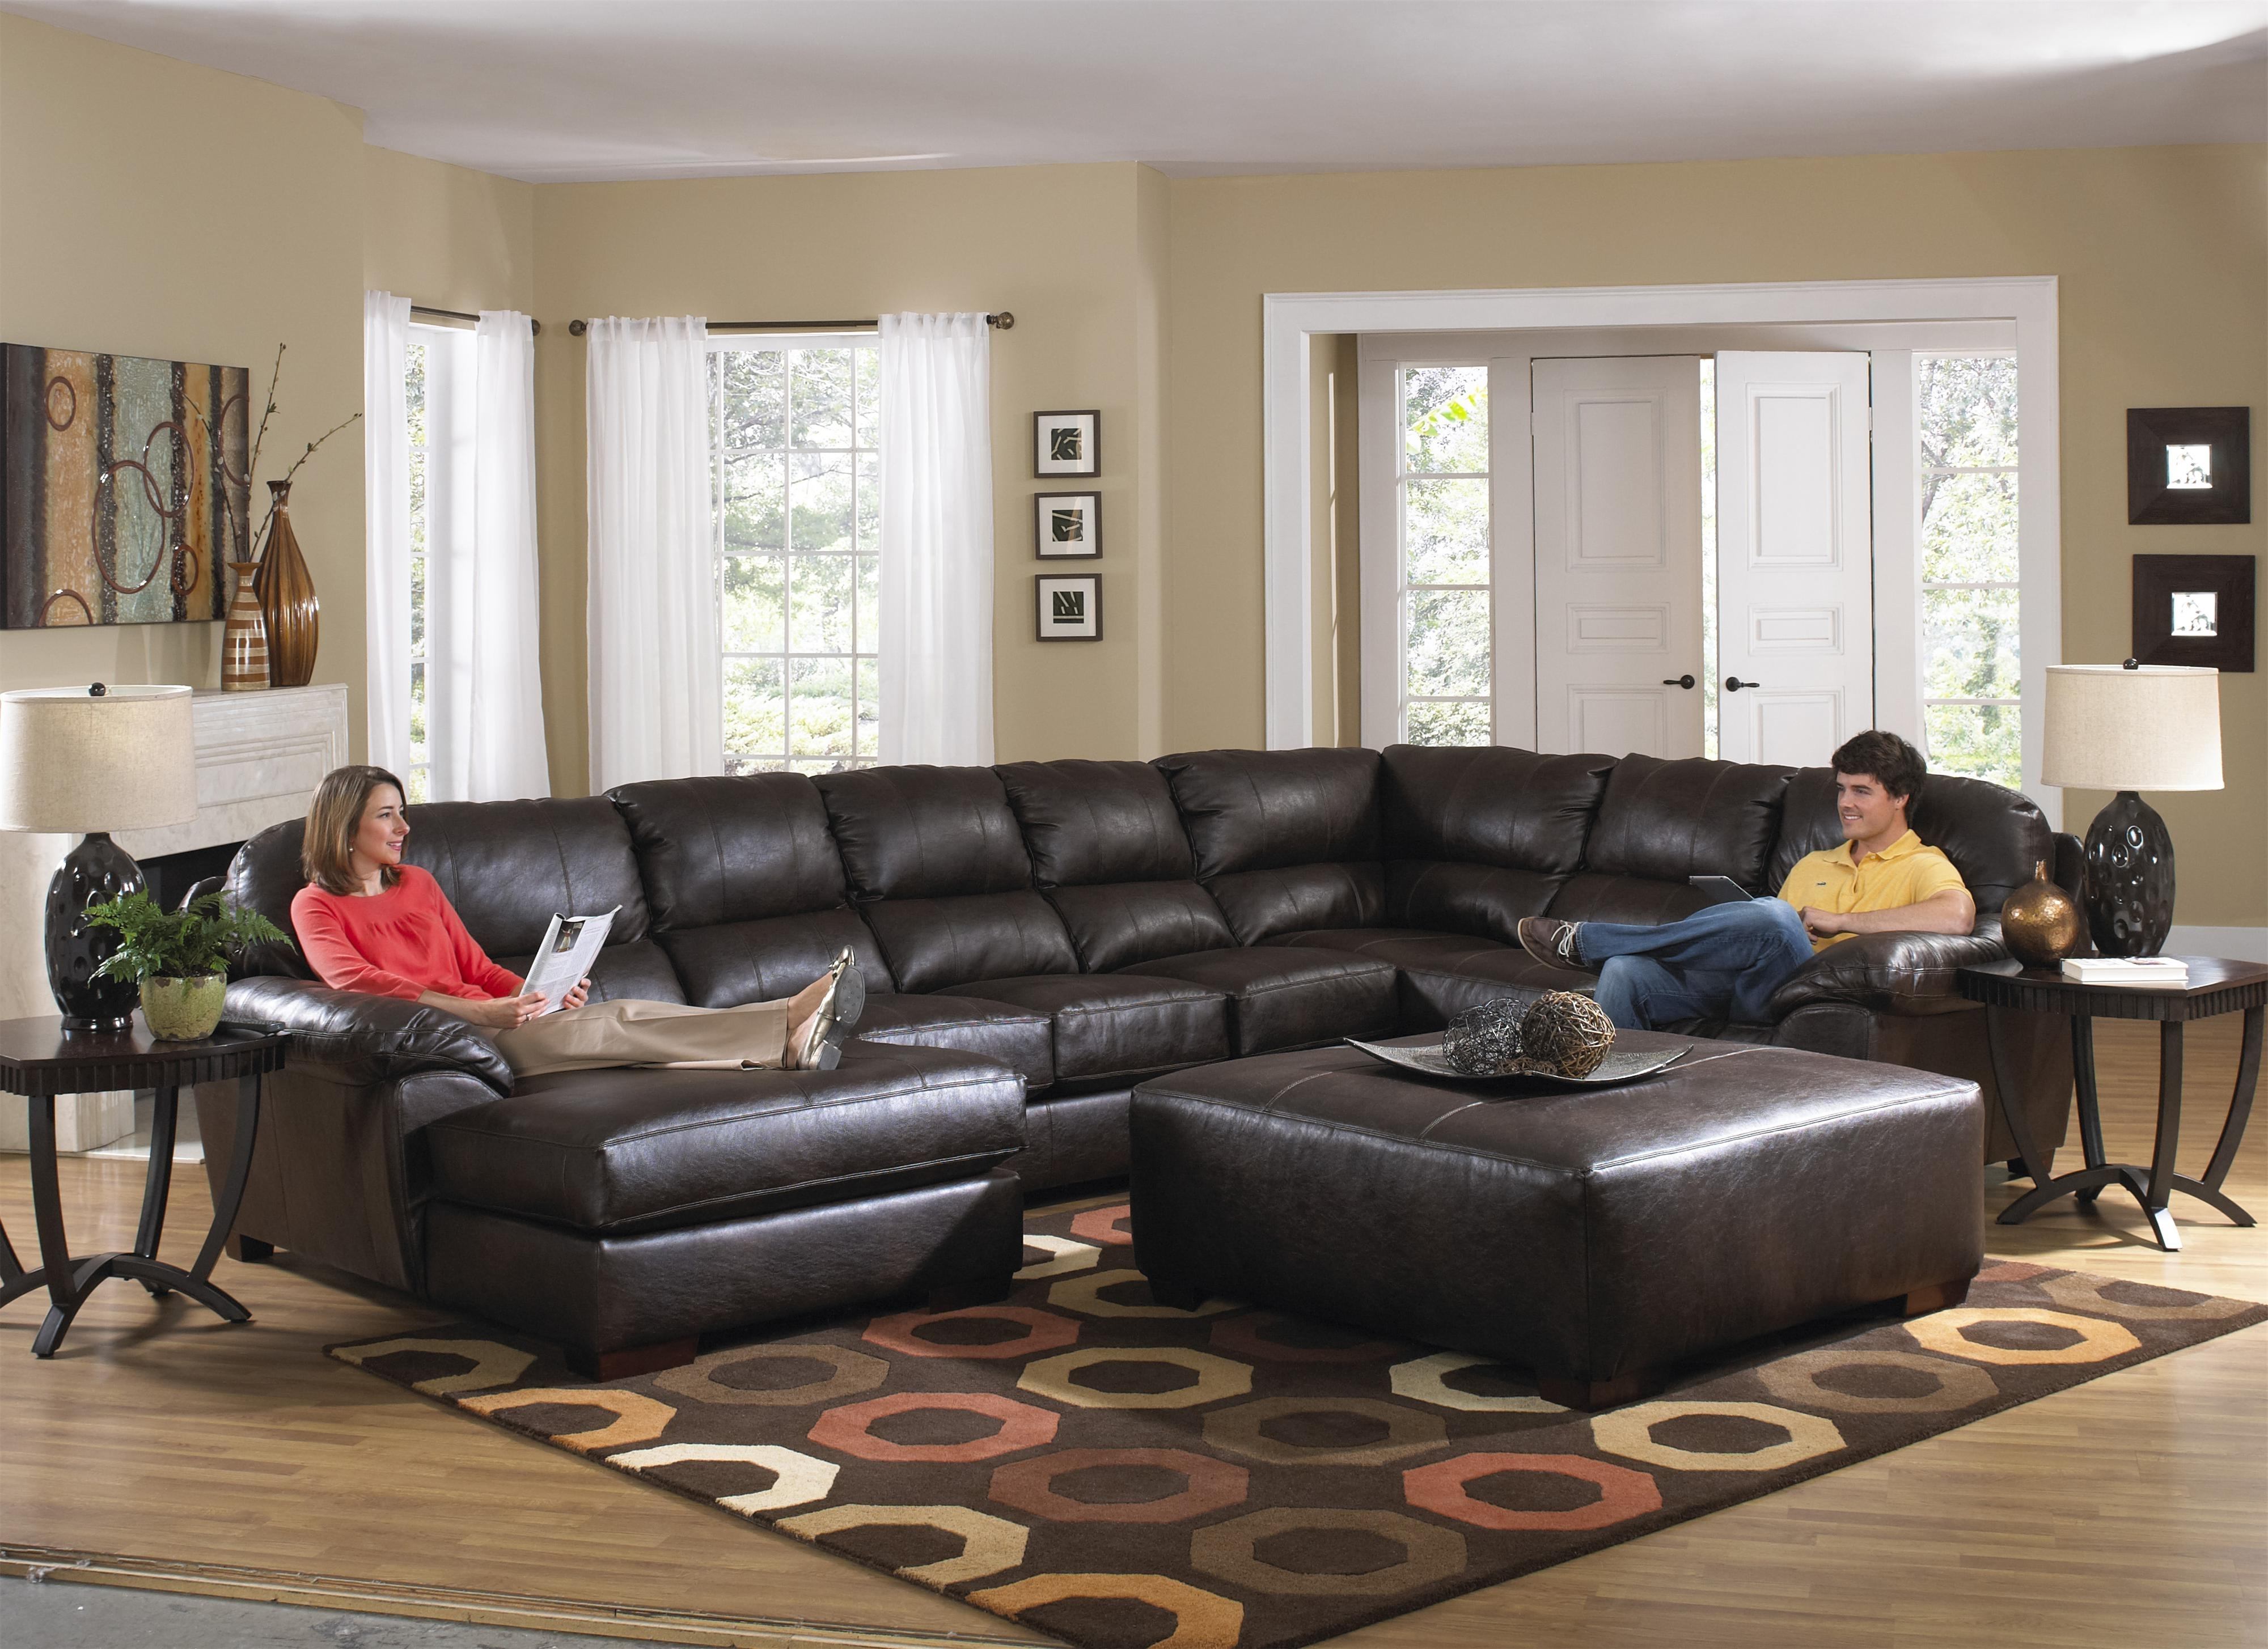 Sectional Couches With Large Ottoman Intended For Recent Oversized Couches Ashley Furniture Extra Deep Couch Oversized (View 7 of 20)